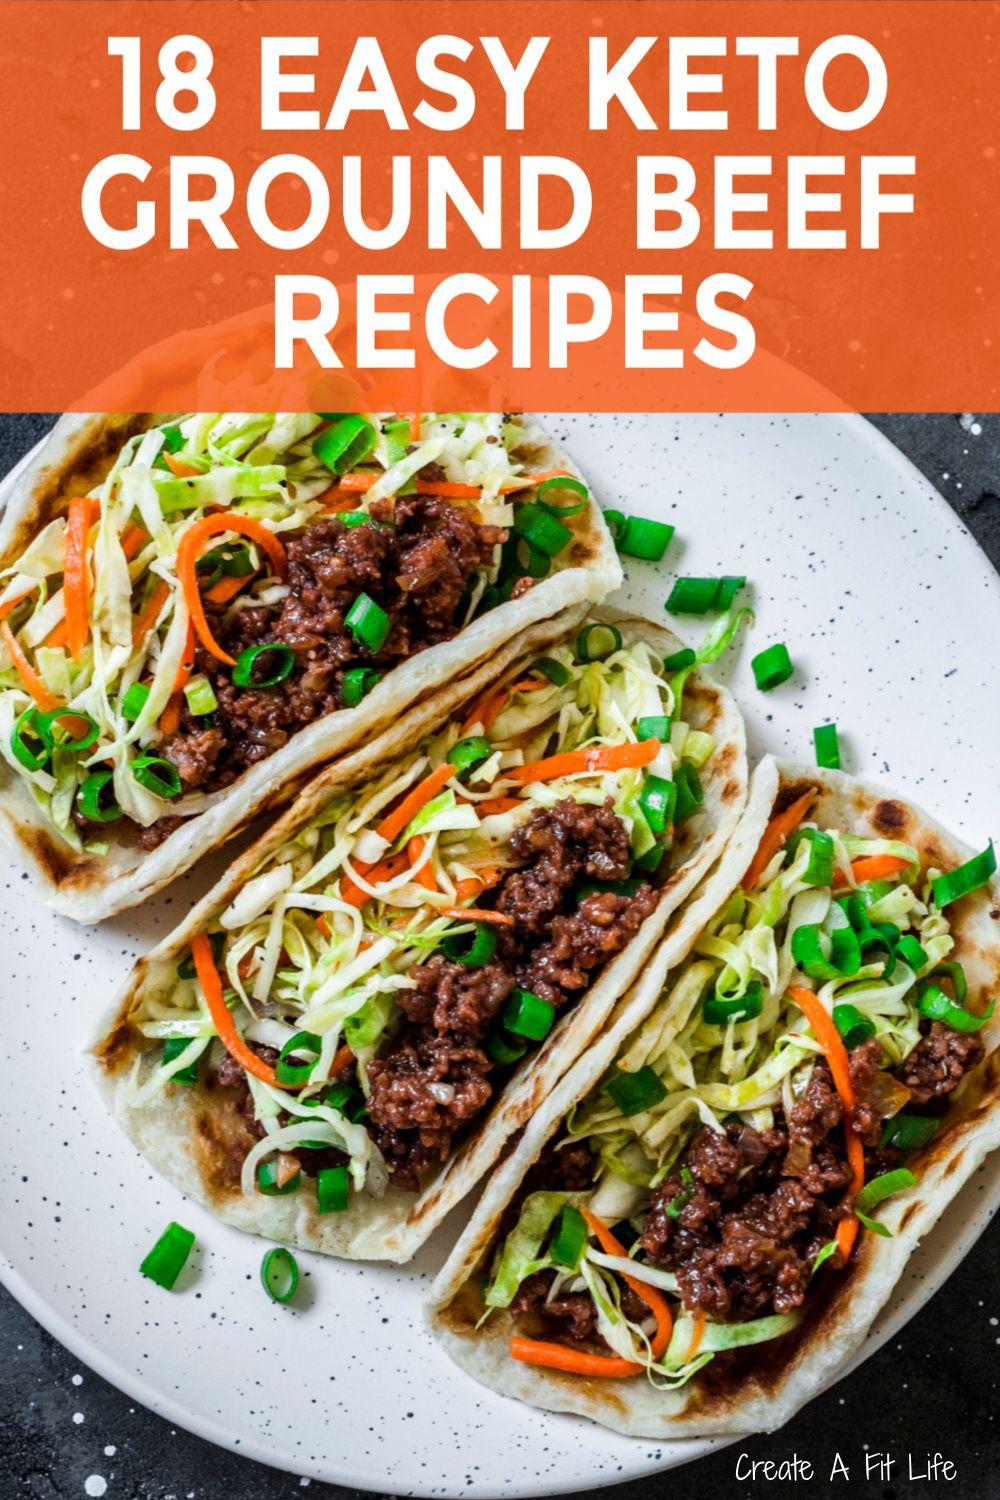 Easy Keto Ground Beef Recipes Create A Fit Life In 2020 Ground Beef Recipes Beef Recipes Keto Diet Meal Plan